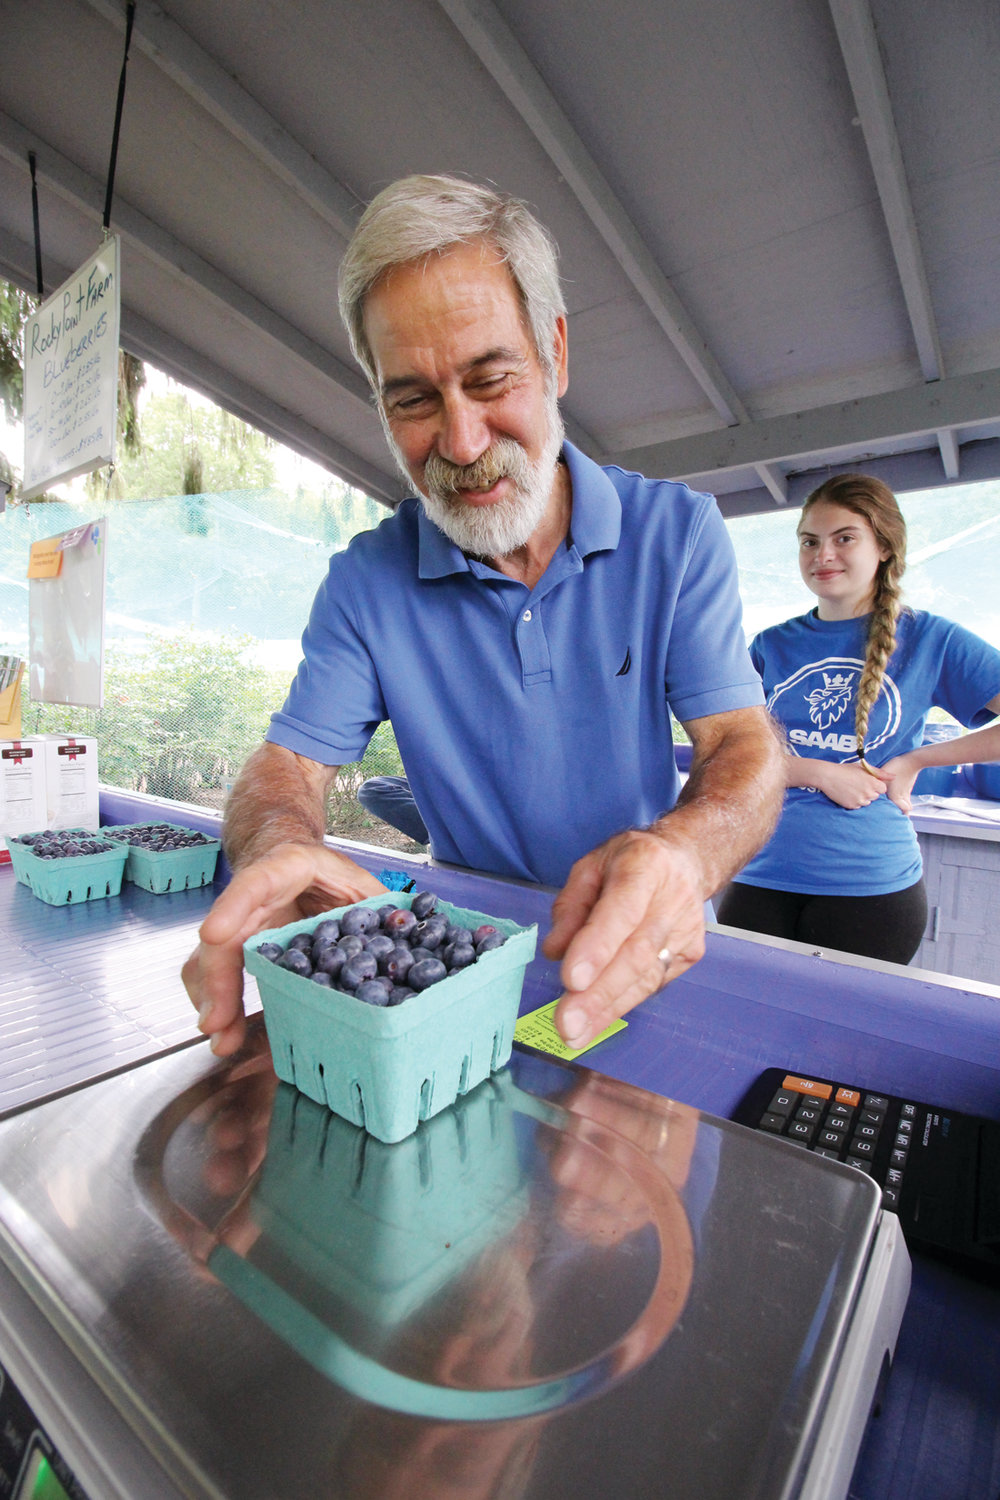 POUND-BY-POUND: Joe Gouveia weighs up a pound of the juicy berries. Working the sand with him is Kendra Manchester, a student at CCRI who aims to become a registered nurse.